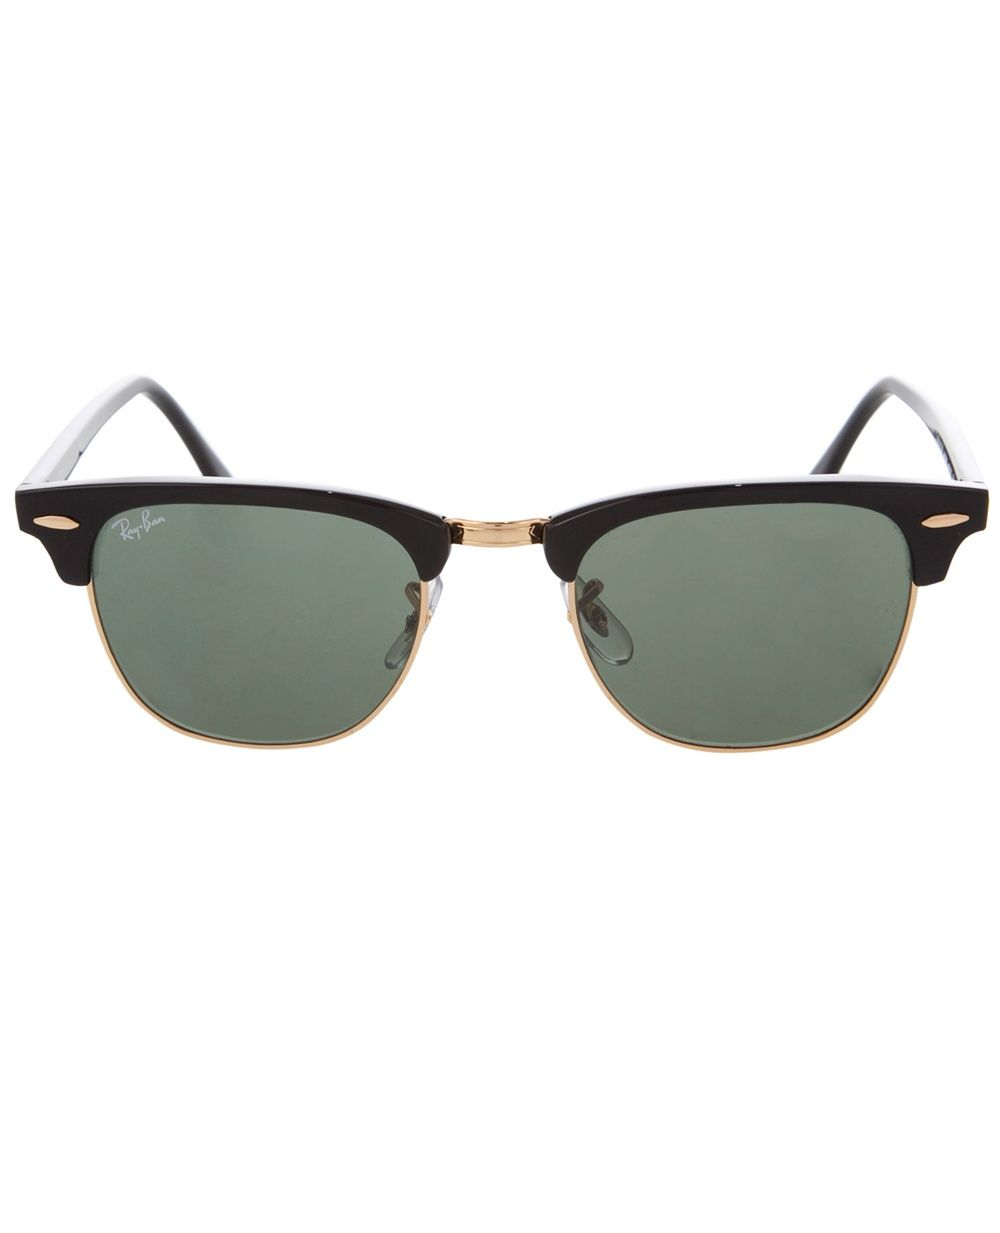 ac102a0b6 RAY BAN 'CLUBMASTER' SUNGLASSES farfetch from Mode de Vue available from  farfetch.com •ƒƒ•